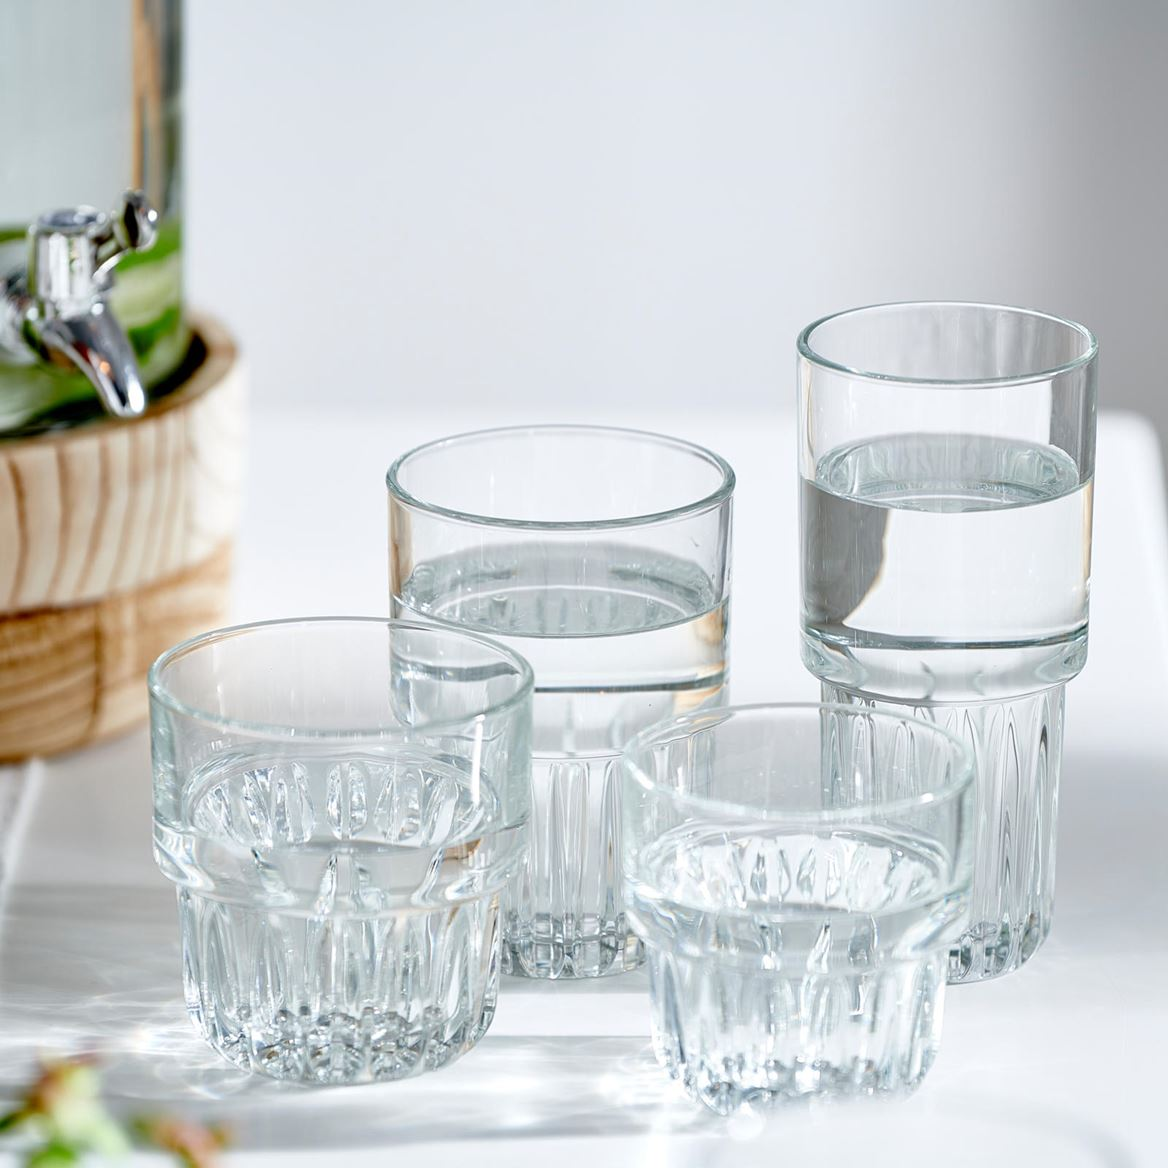 EVEREST Verre transparent H 12,1 cm; Ø 8,6 cm_everest-verre-transparent-h-12,1-cm;-ø-8,6-cm